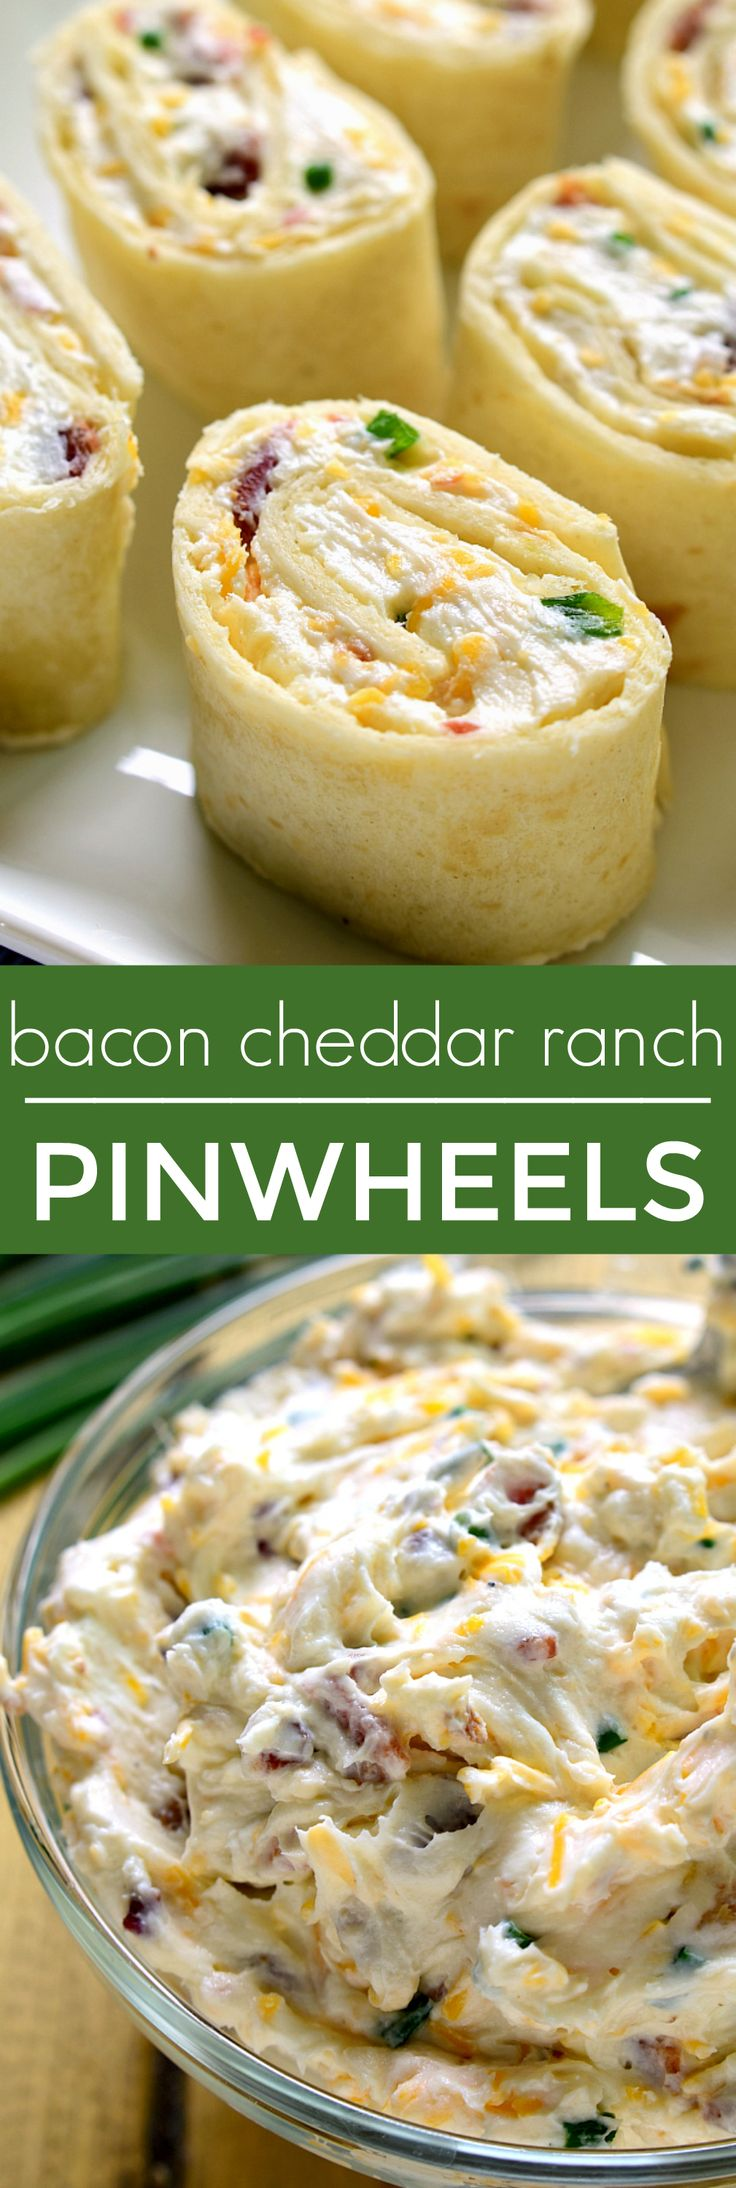 Bacon-Cheddar-Ranch-Pinwheels-Long